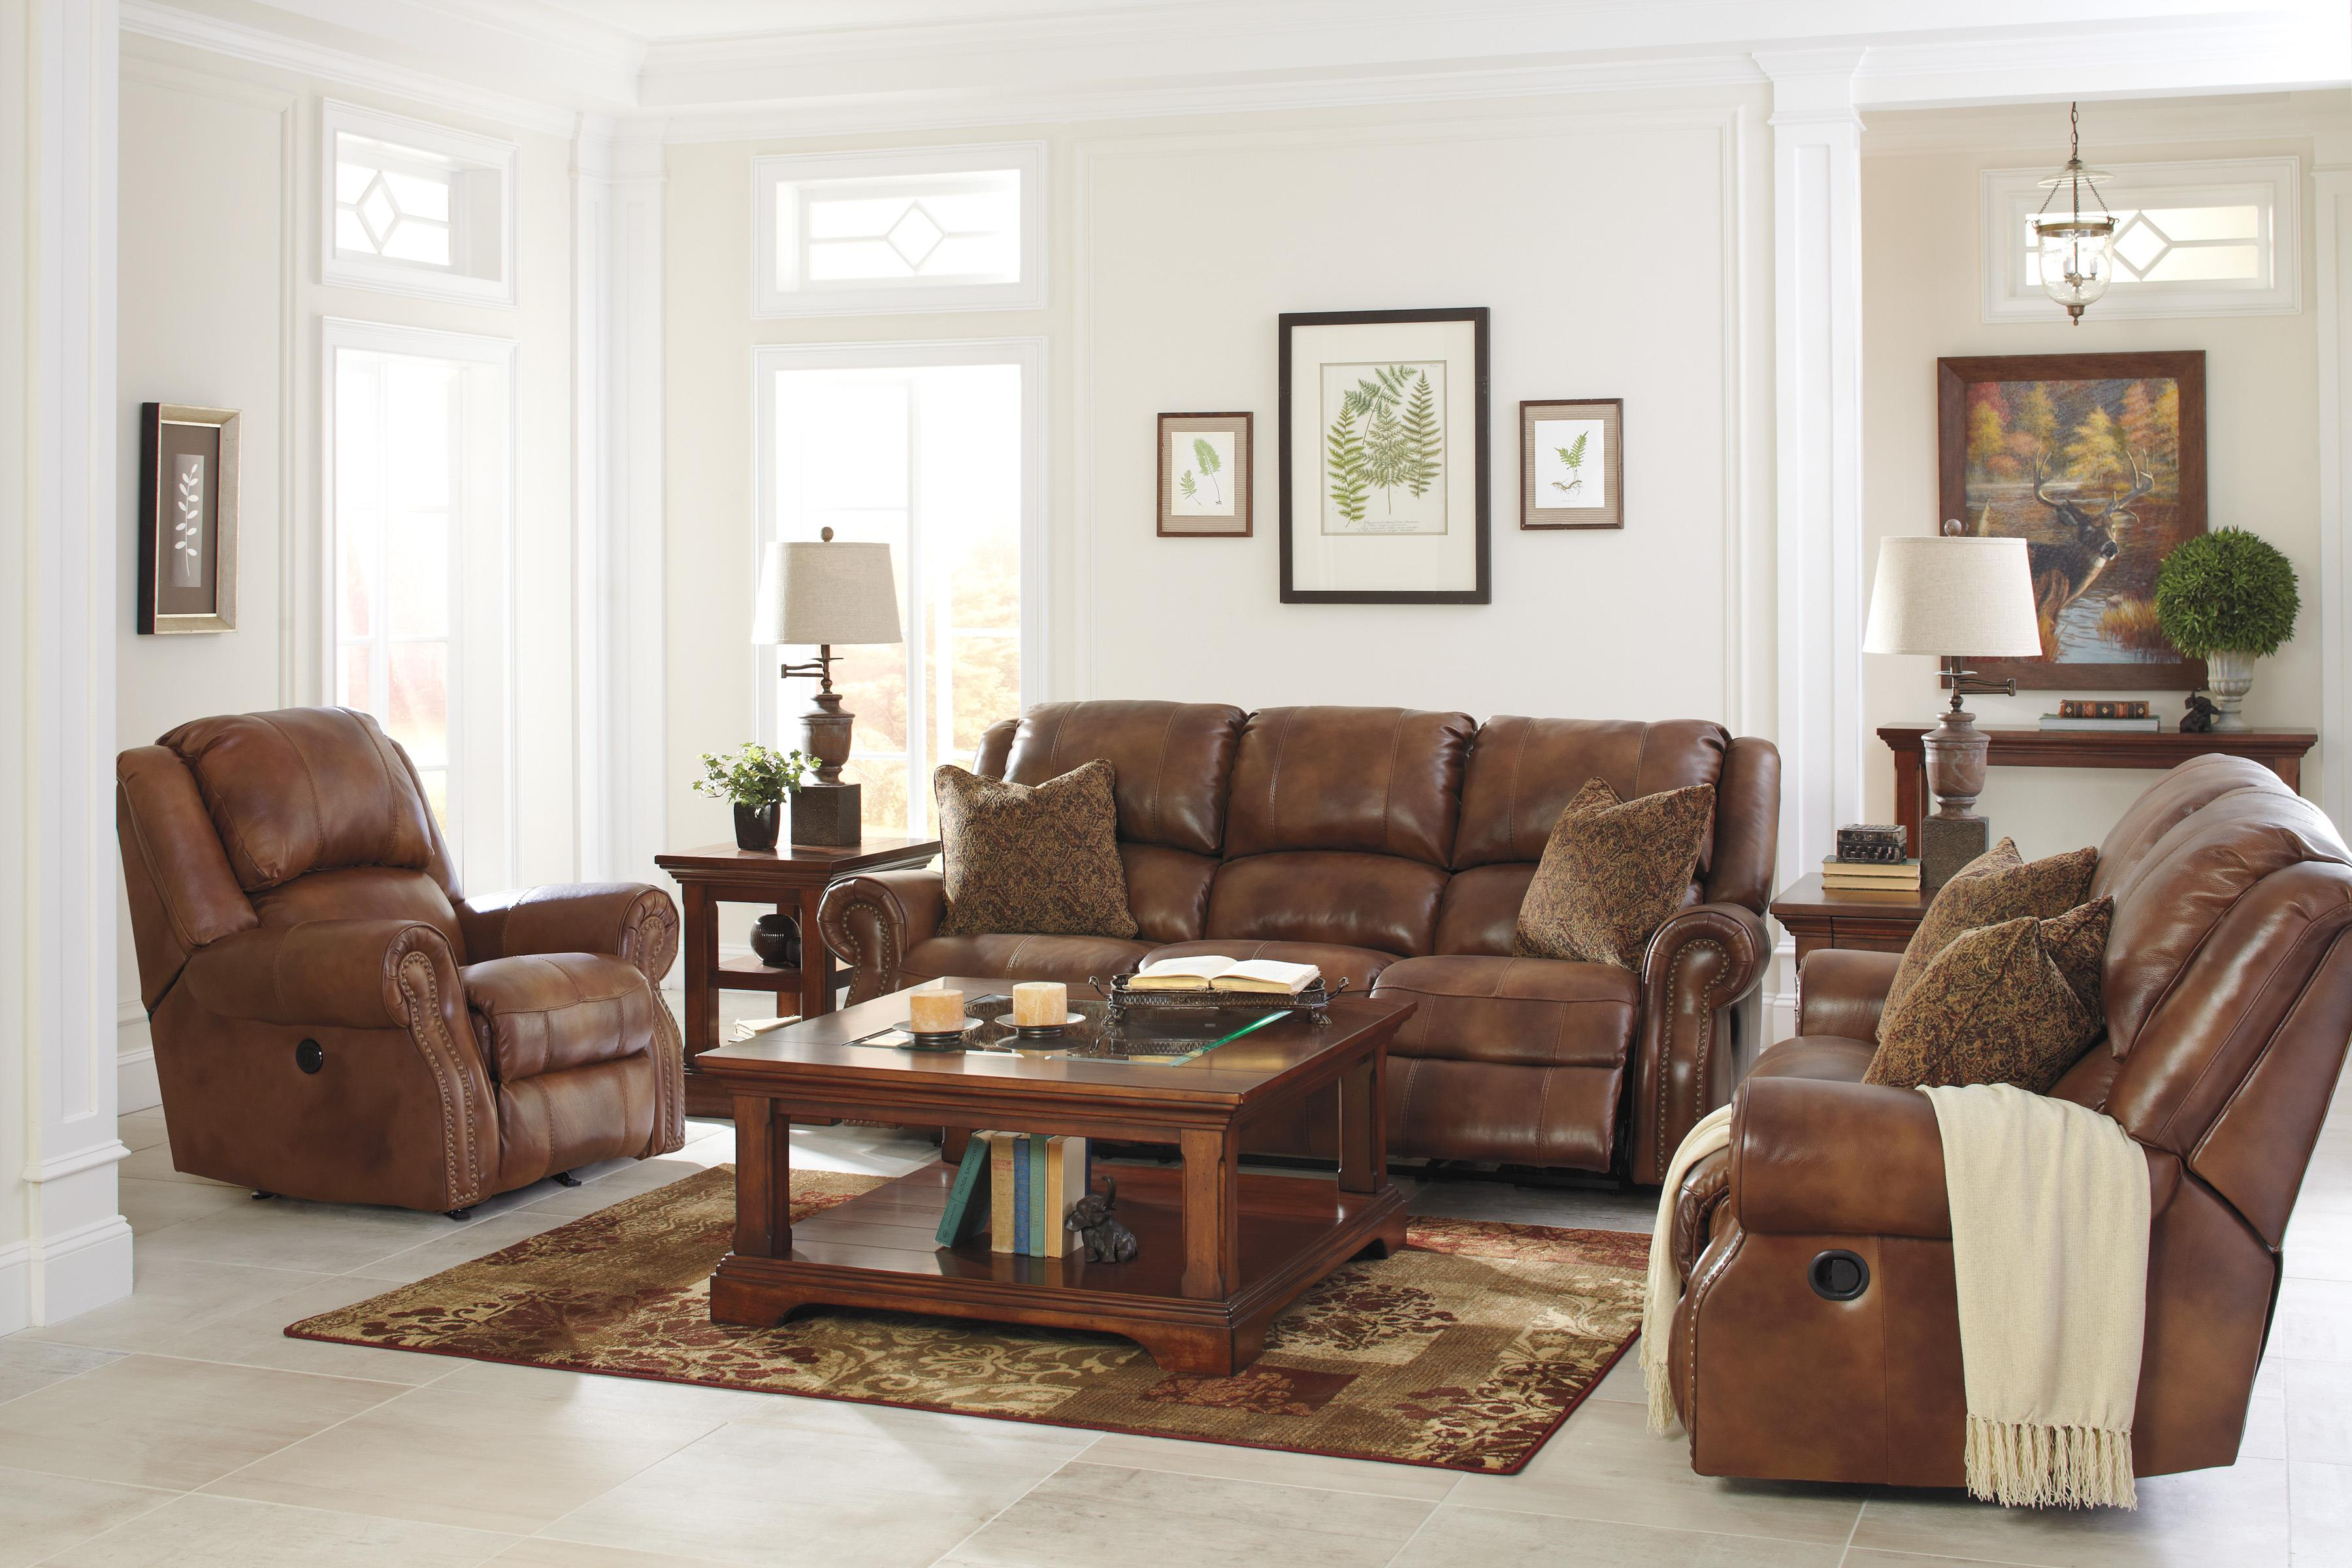 Signature Design by Ashley Walworth Reclining Living Room Group - Item Number: U78001 Living Room Group 4